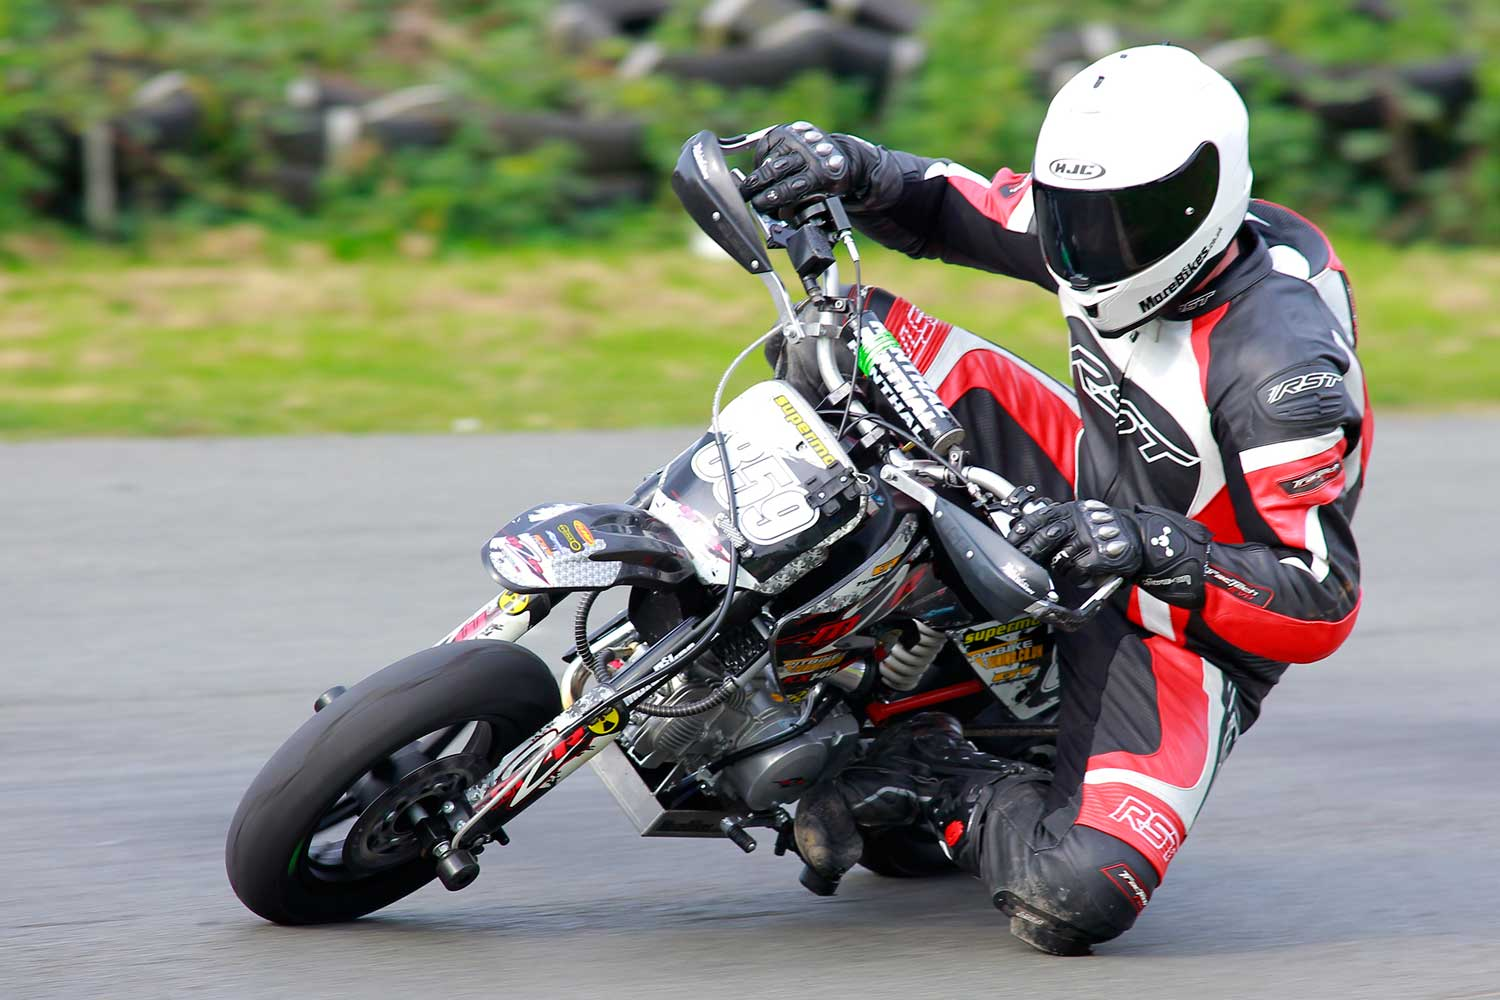 John on his M2R at Stretton. Photo by Mark Hall